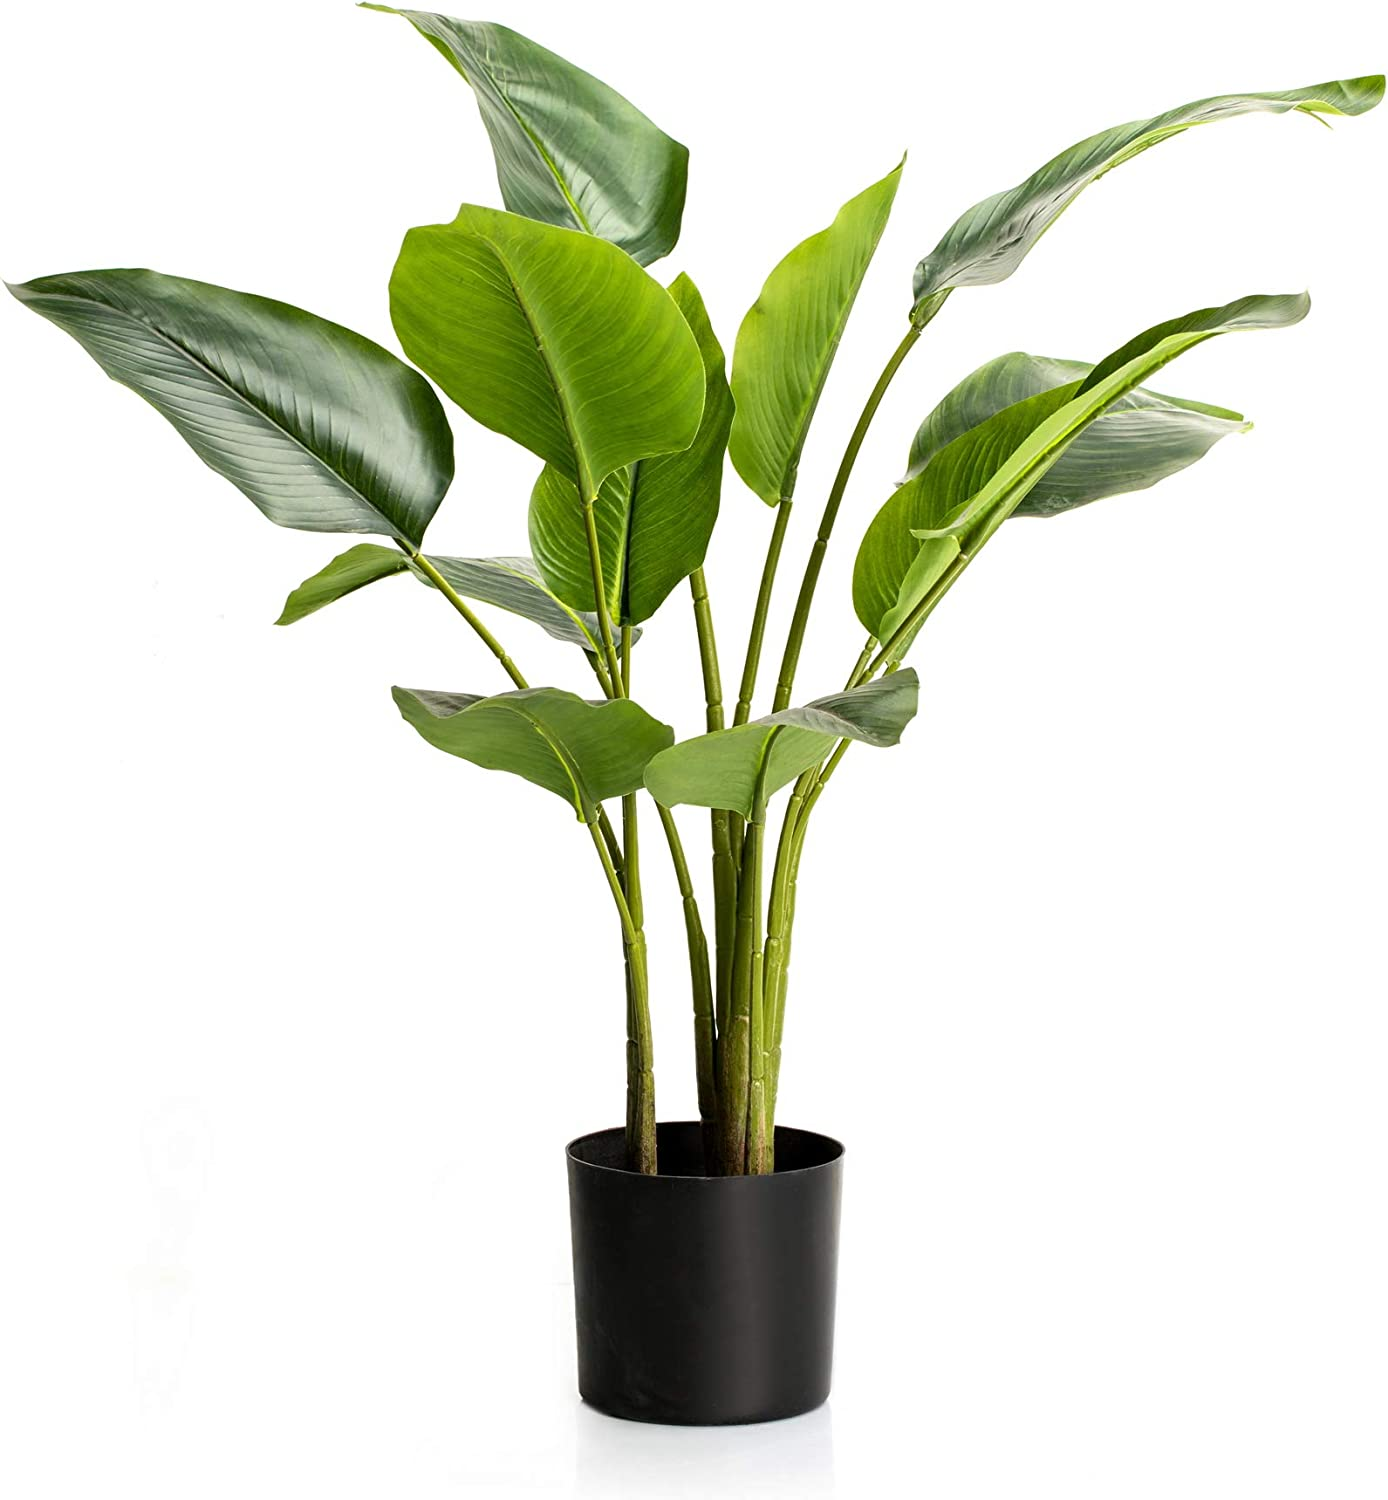 Velener 2.6' Artificial Potted Bird of Paradise Palm Tree Floor Plant for Home Décor